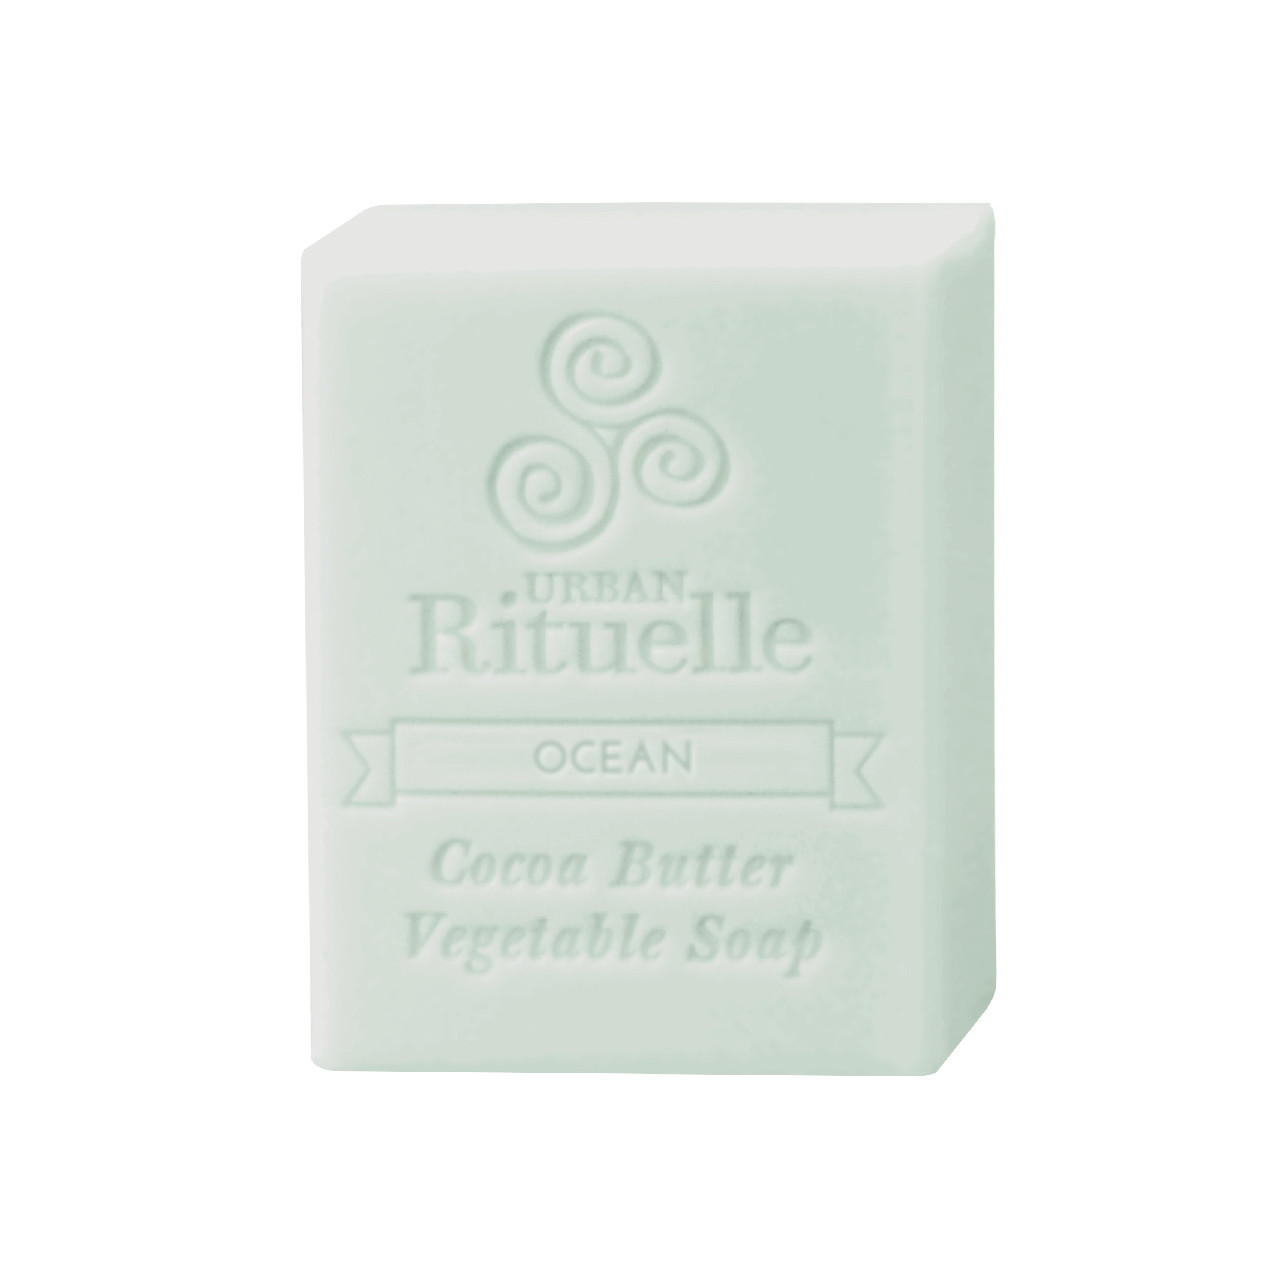 Organic Cocoa Butter Vegetable Soap - Ocean - Urban Rituelle